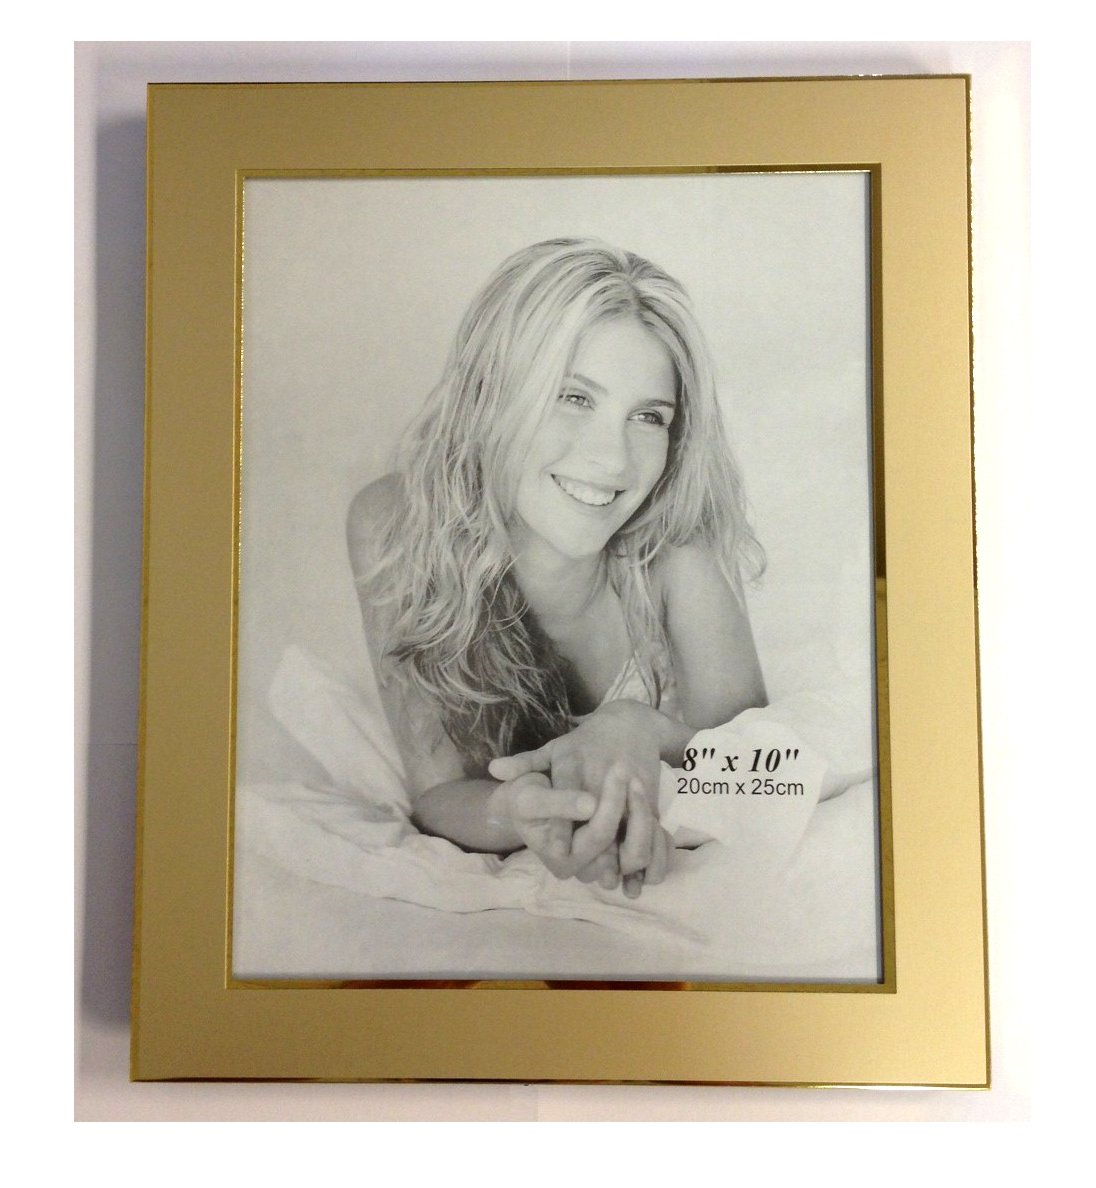 Upper Gifts Gold Metal 8 x 10 Picture Frame 2 Tone Brush Gold Finish with Shiny Inlay